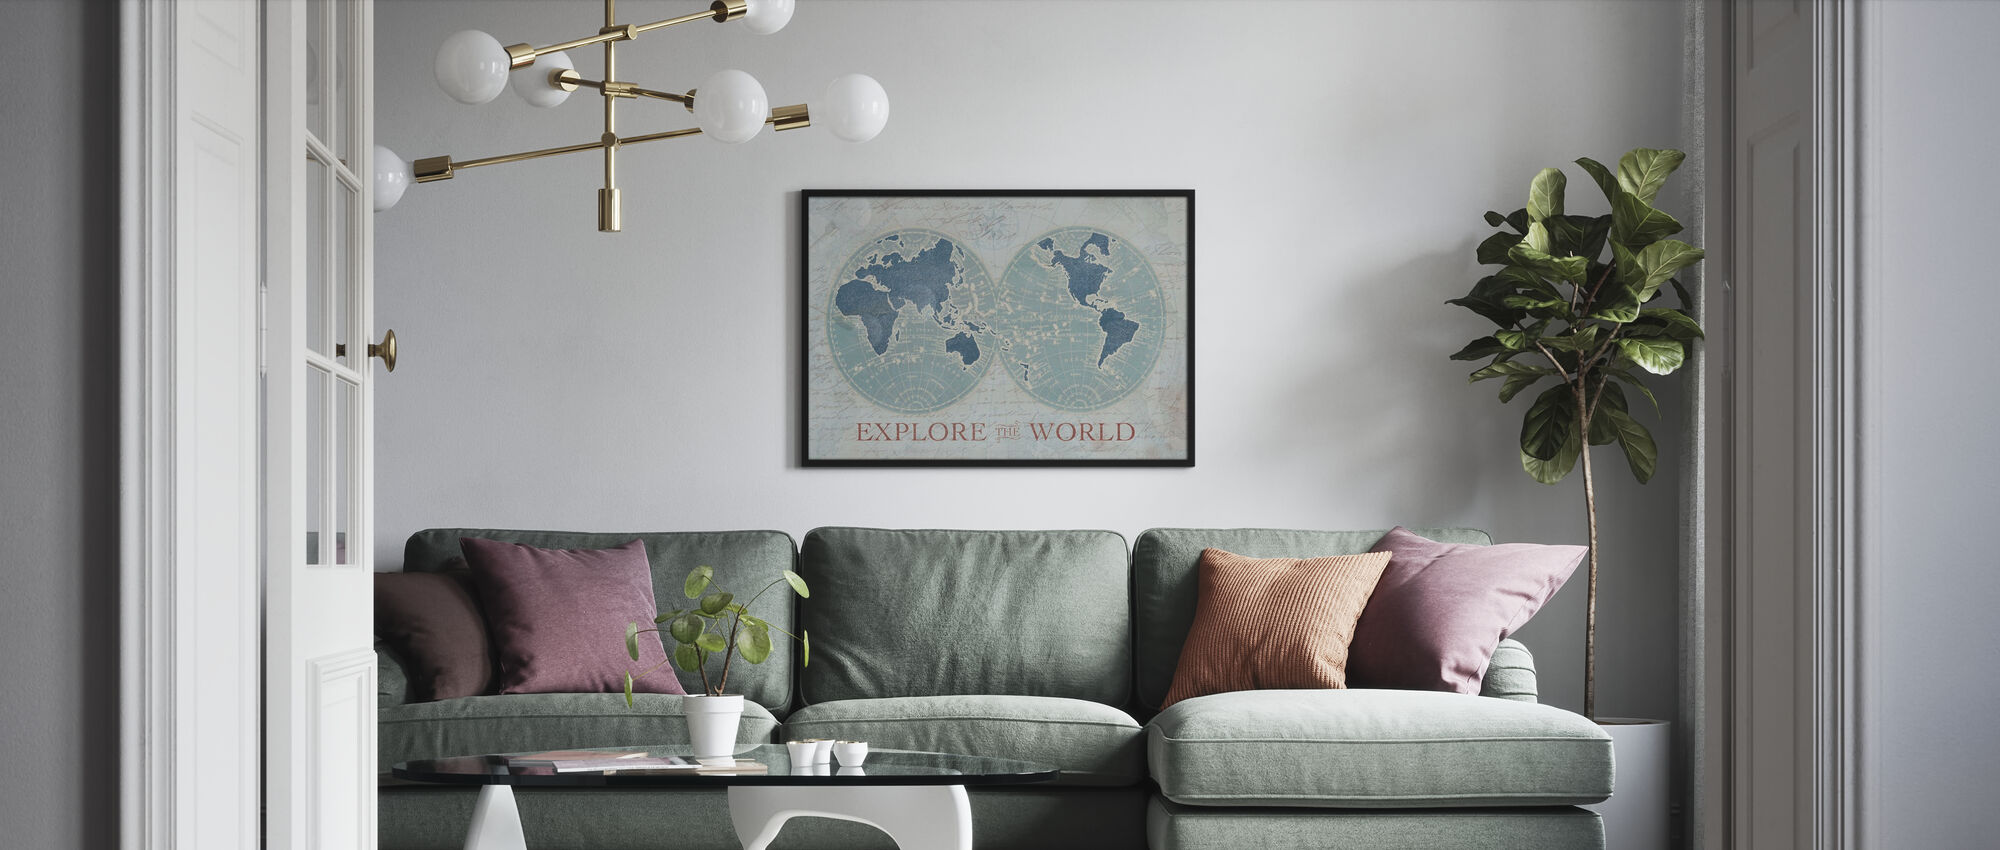 Explore the World 2 - Poster - Living Room